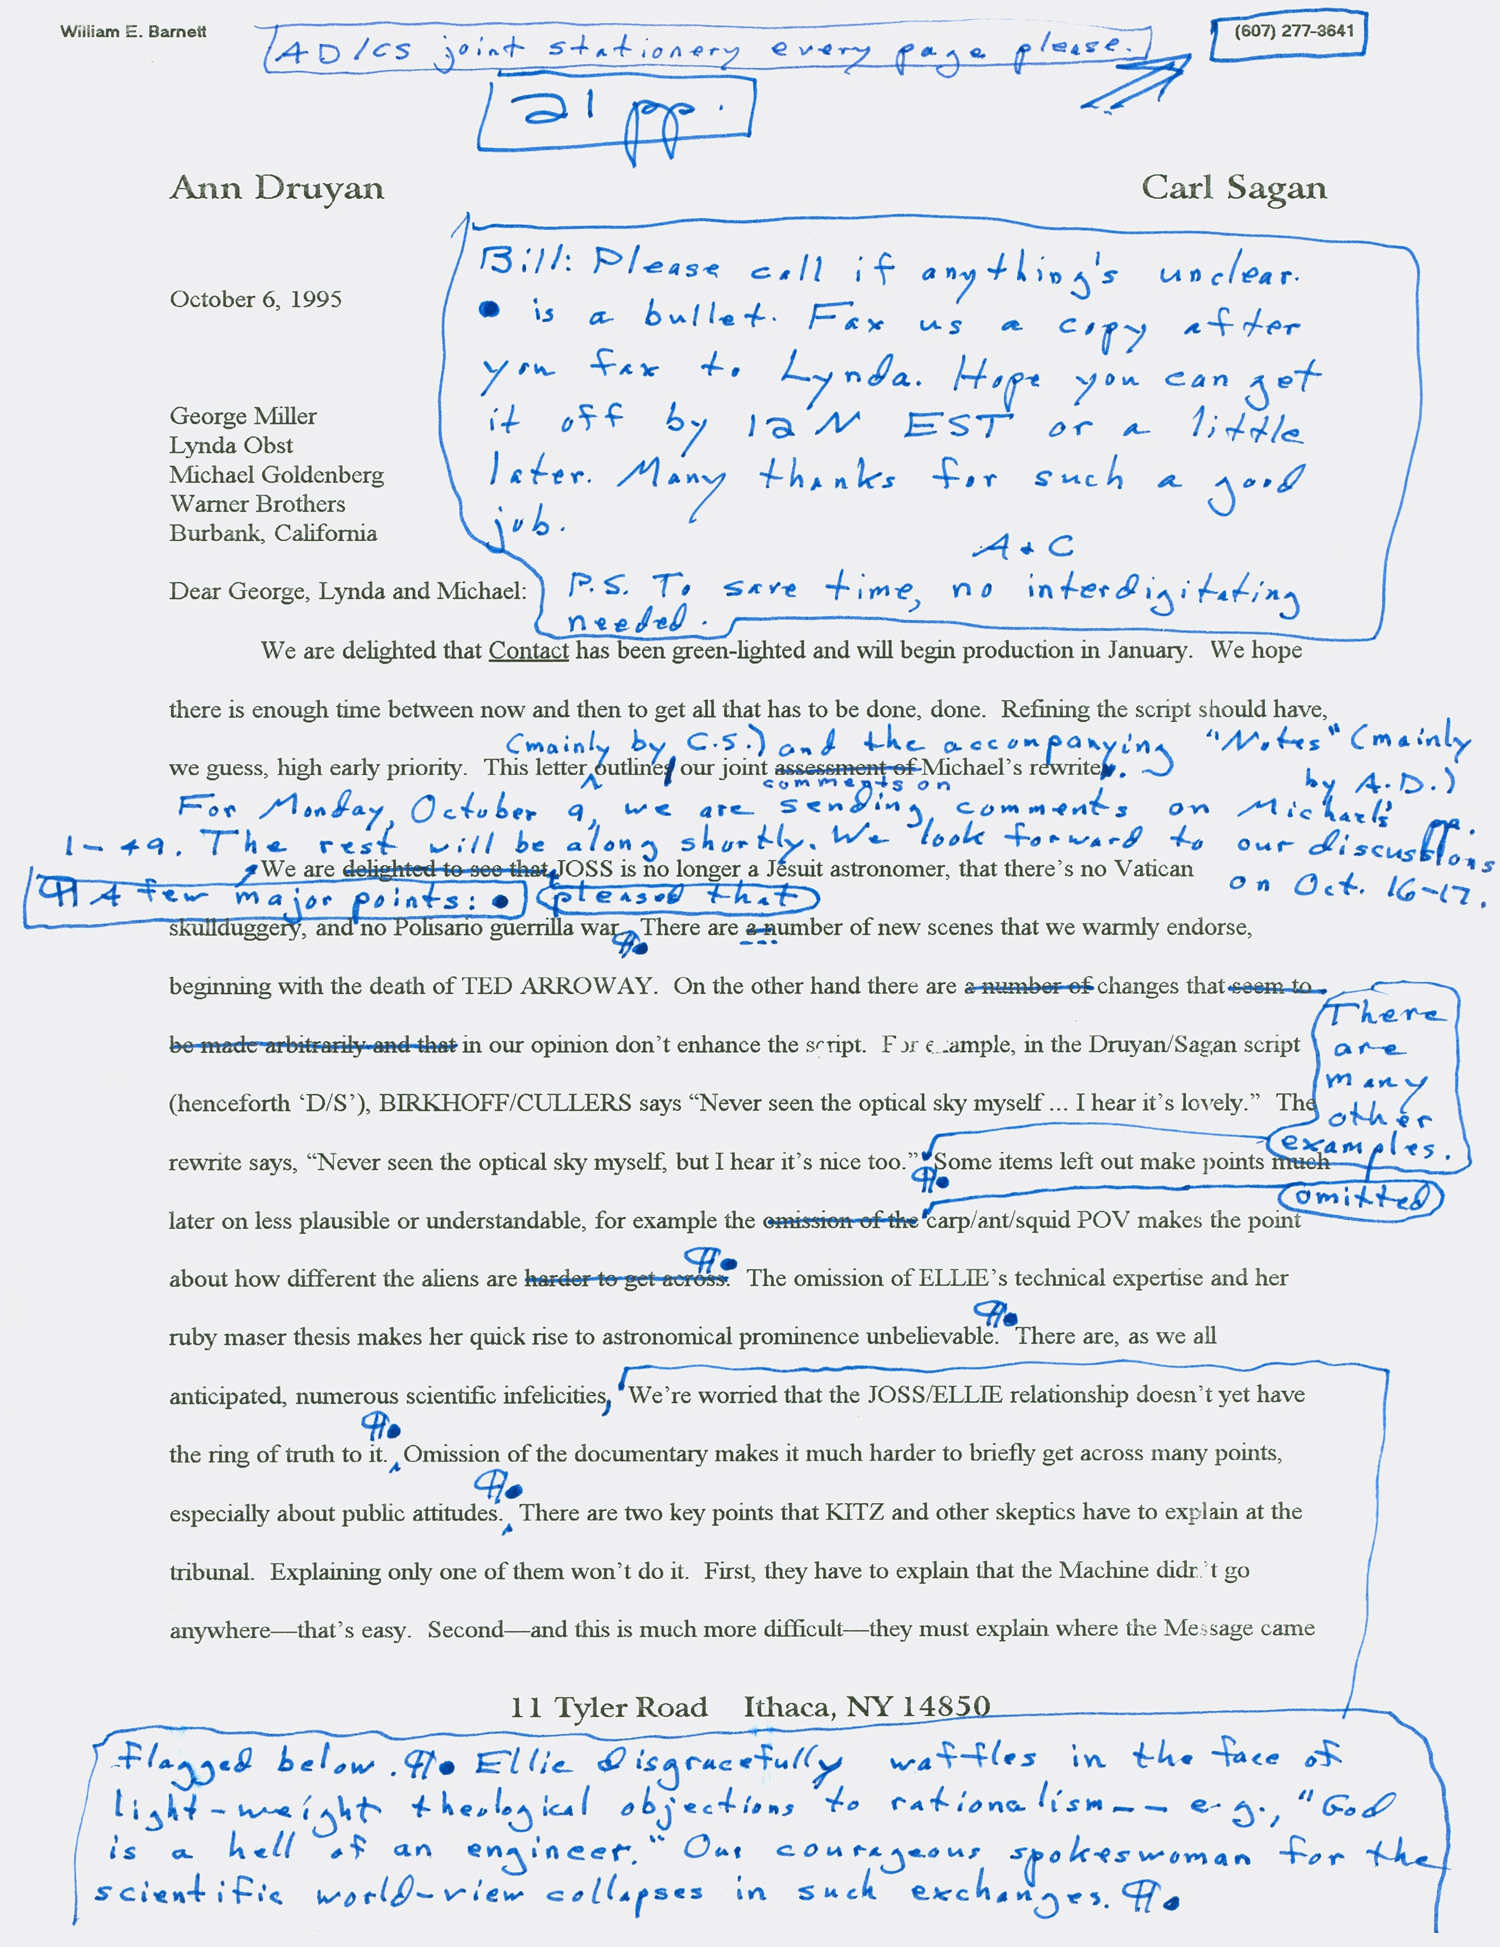 Carl Sagan Letter about the Film 'Contact'